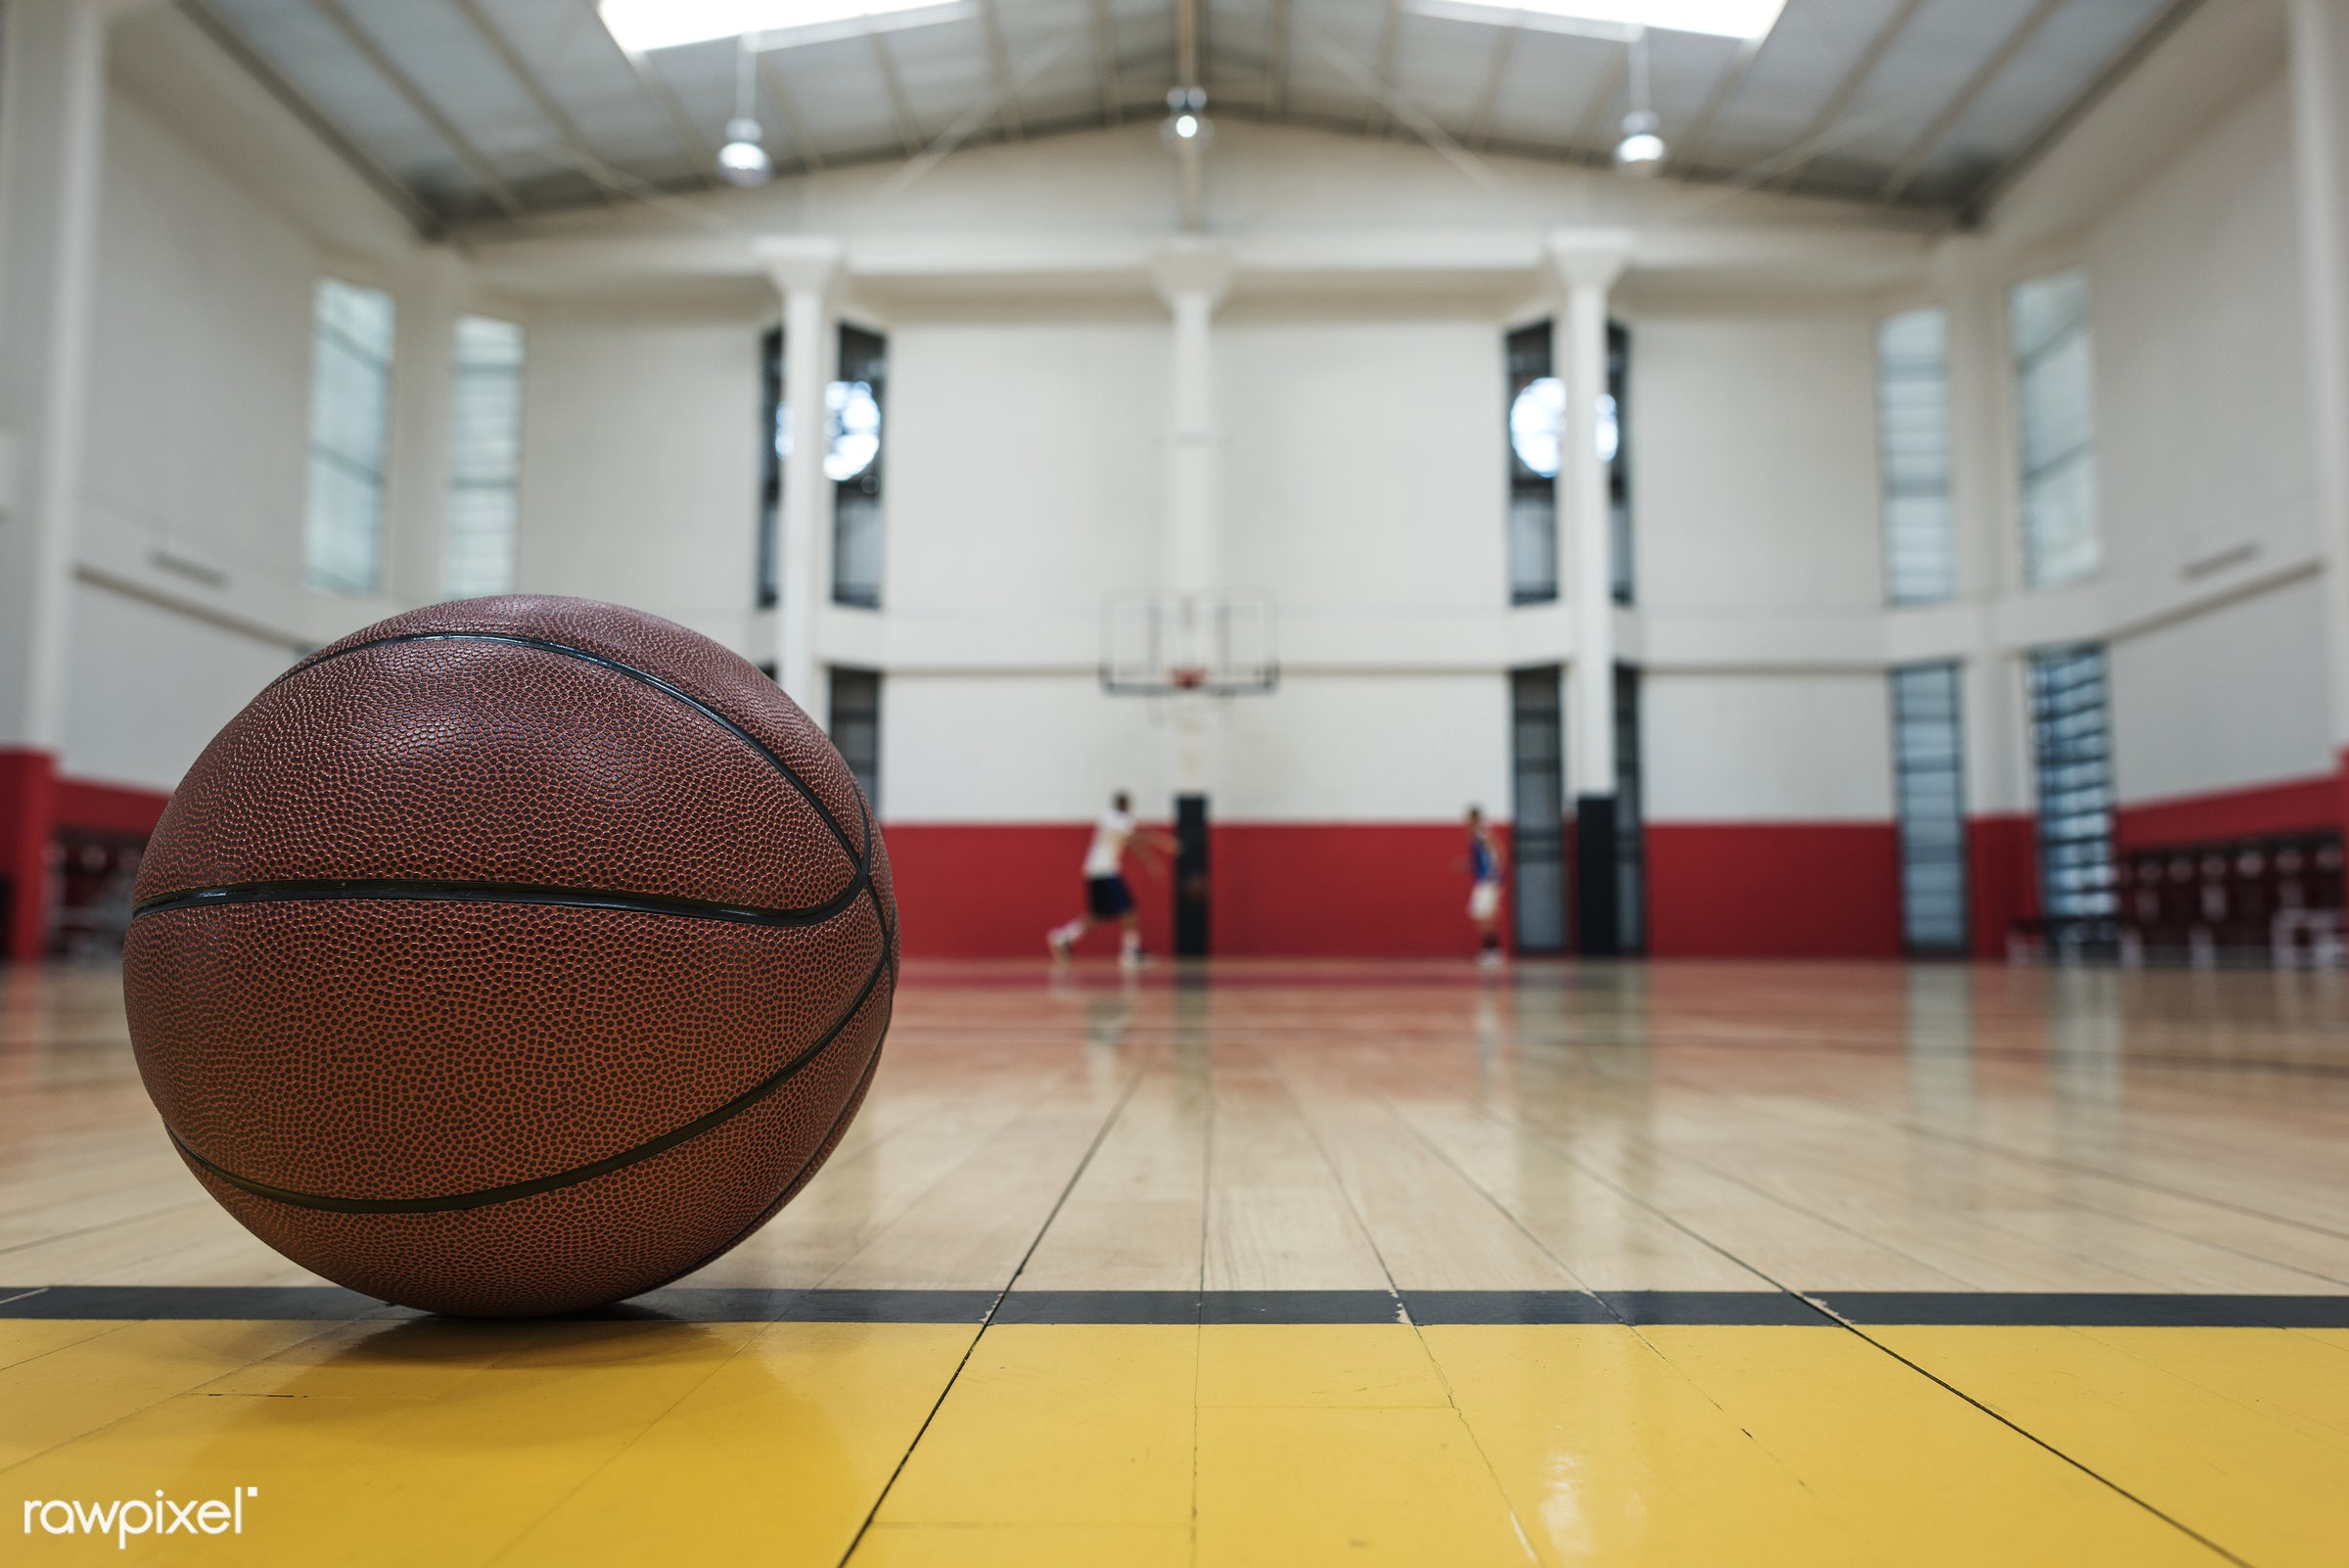 Young basketball player shoot - basketball, activity, ball, closeup, court, exercise, floor, game, object, play, practice,...